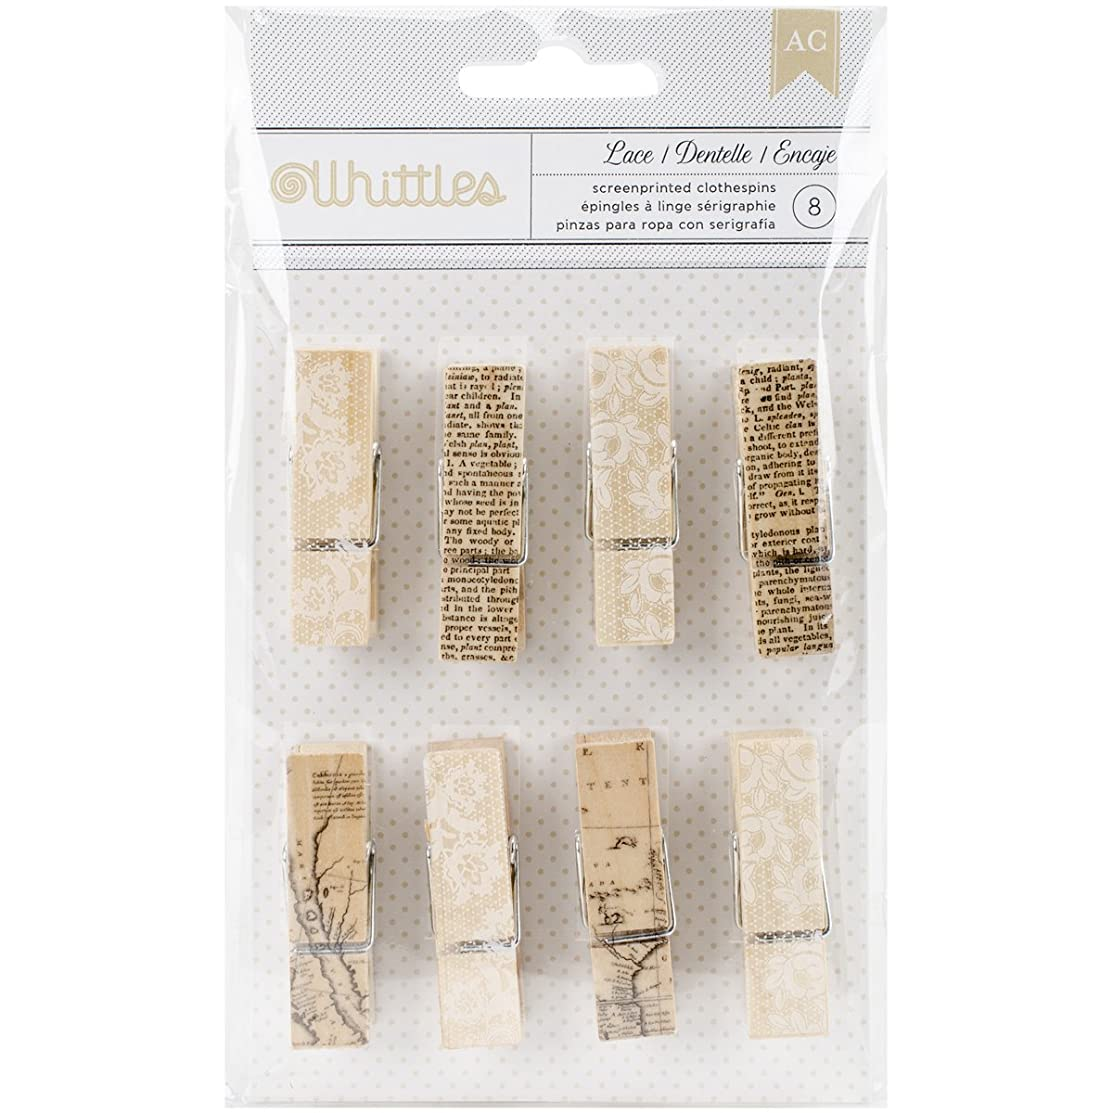 American Crafts Printed Clothespins Newsprint and Lace (8 Piece)